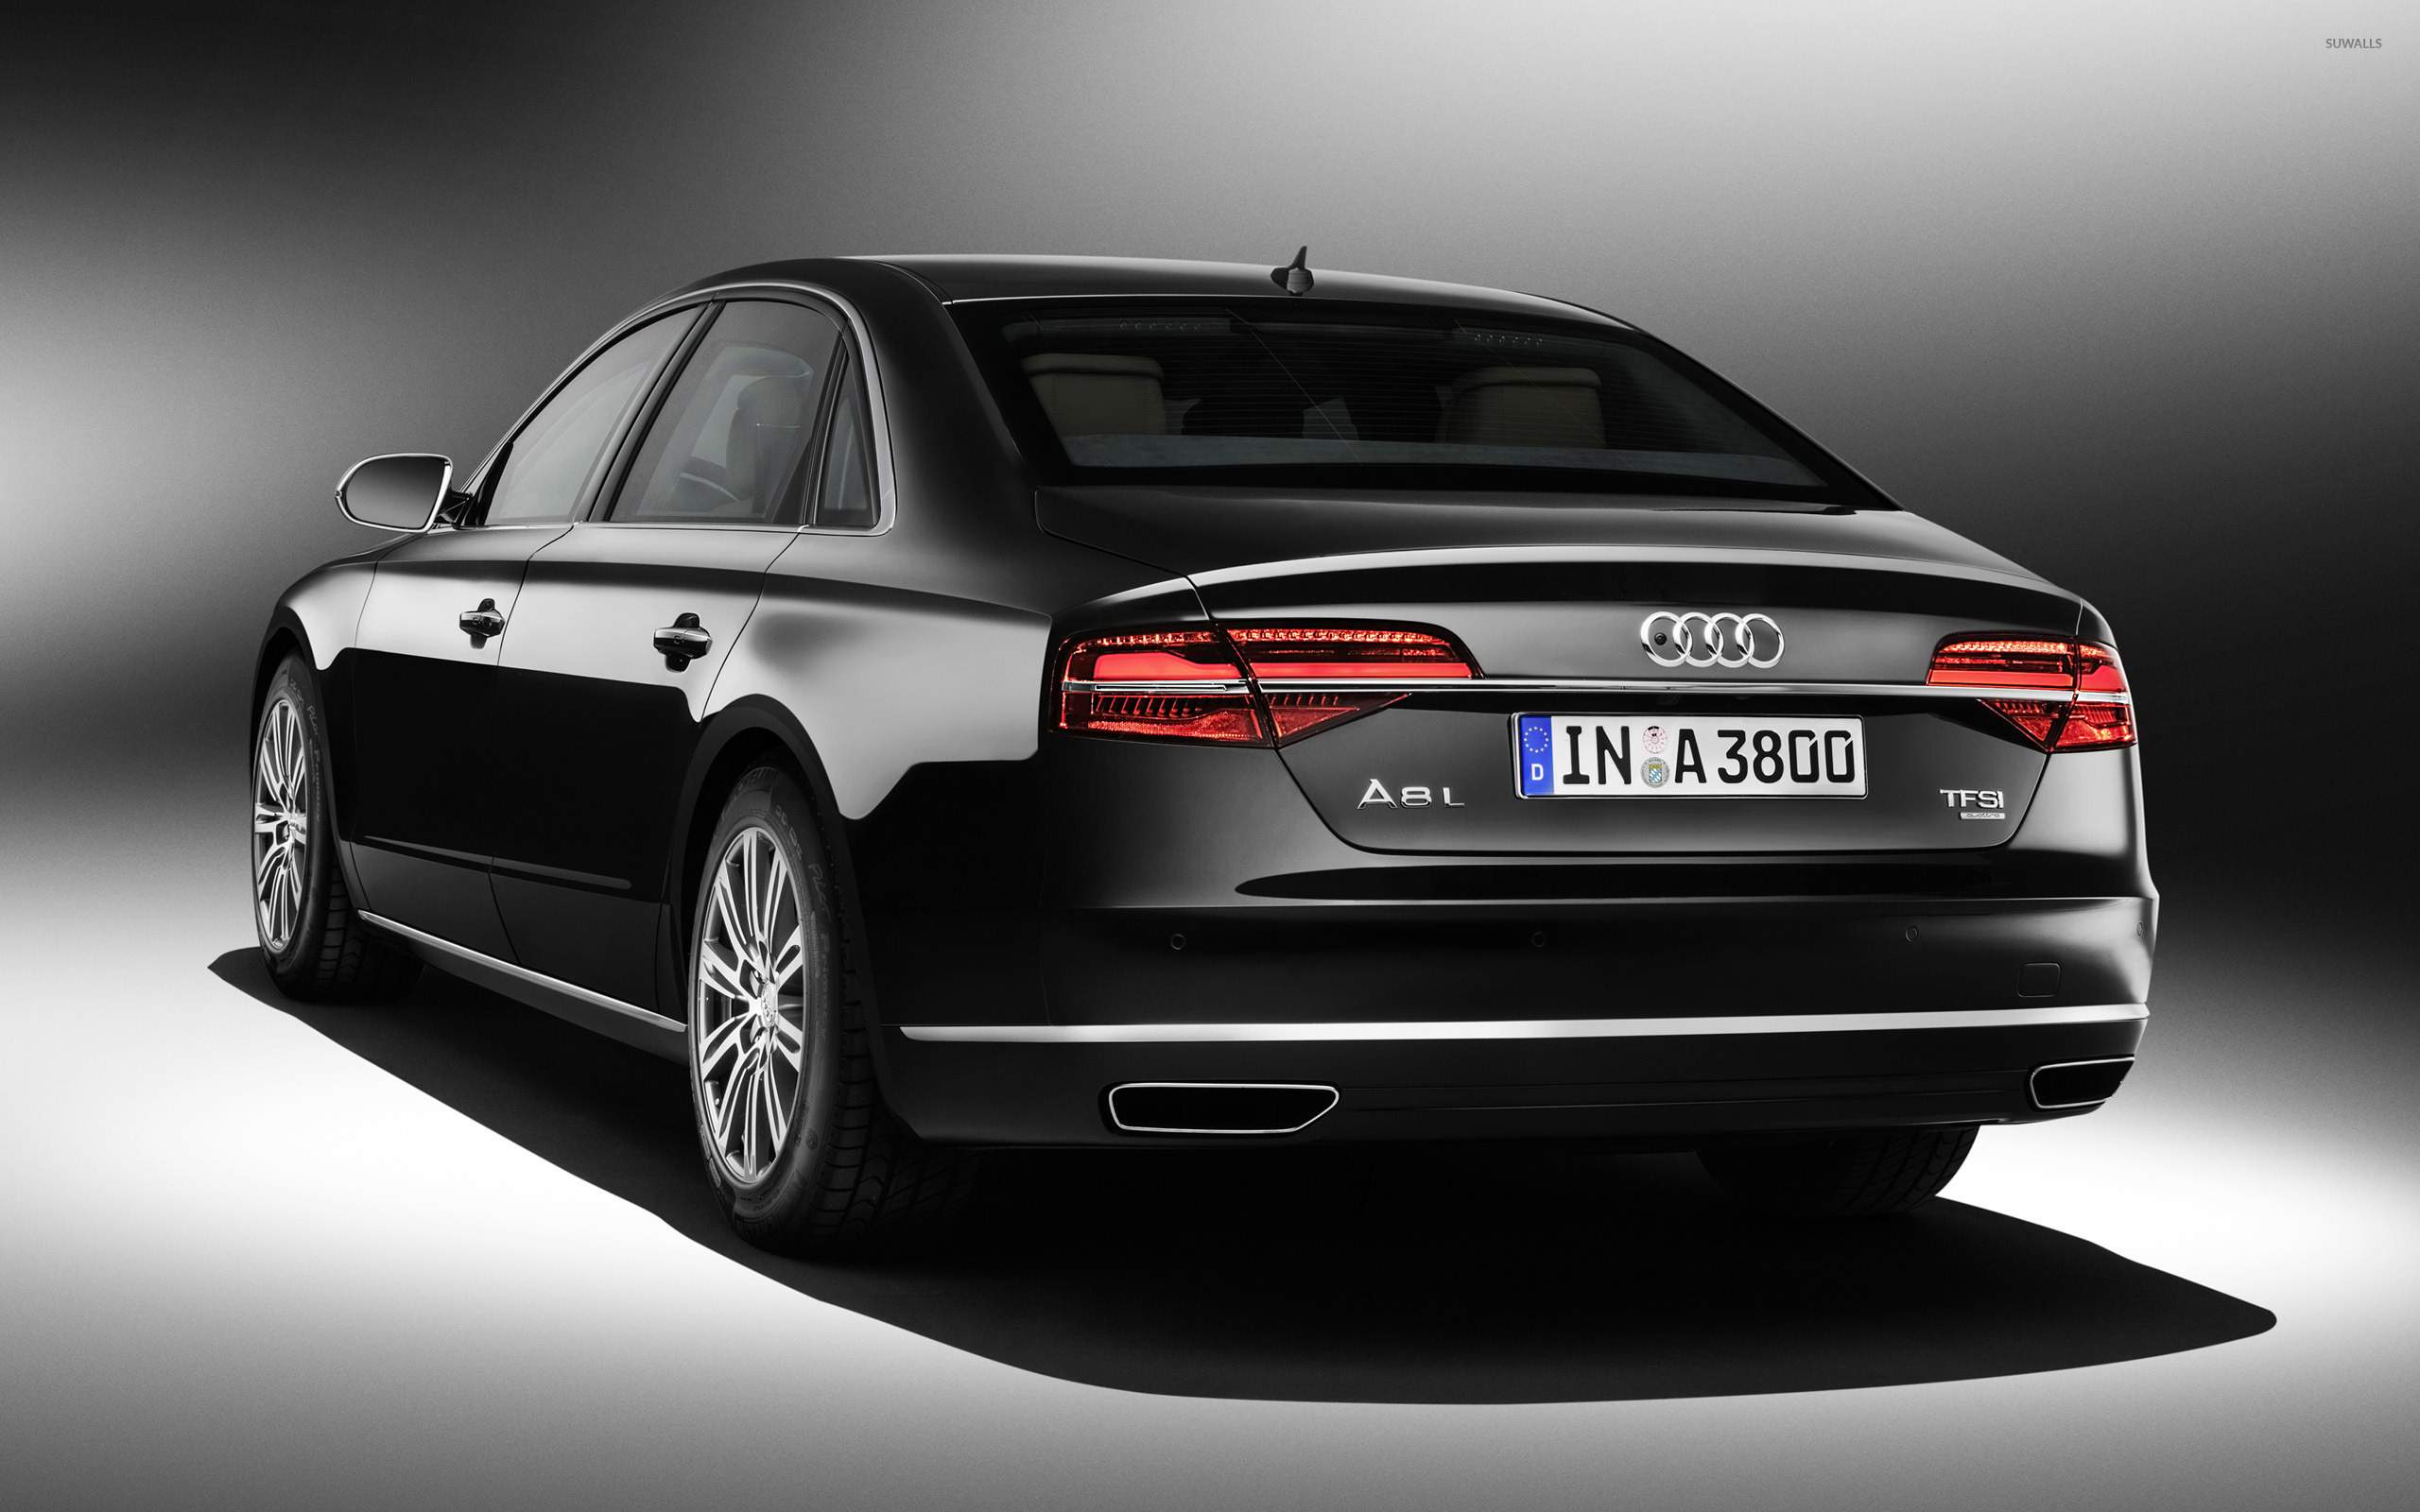 2014 audi a8 l w12 quattro 3 wallpaper car wallpapers 39712. Black Bedroom Furniture Sets. Home Design Ideas